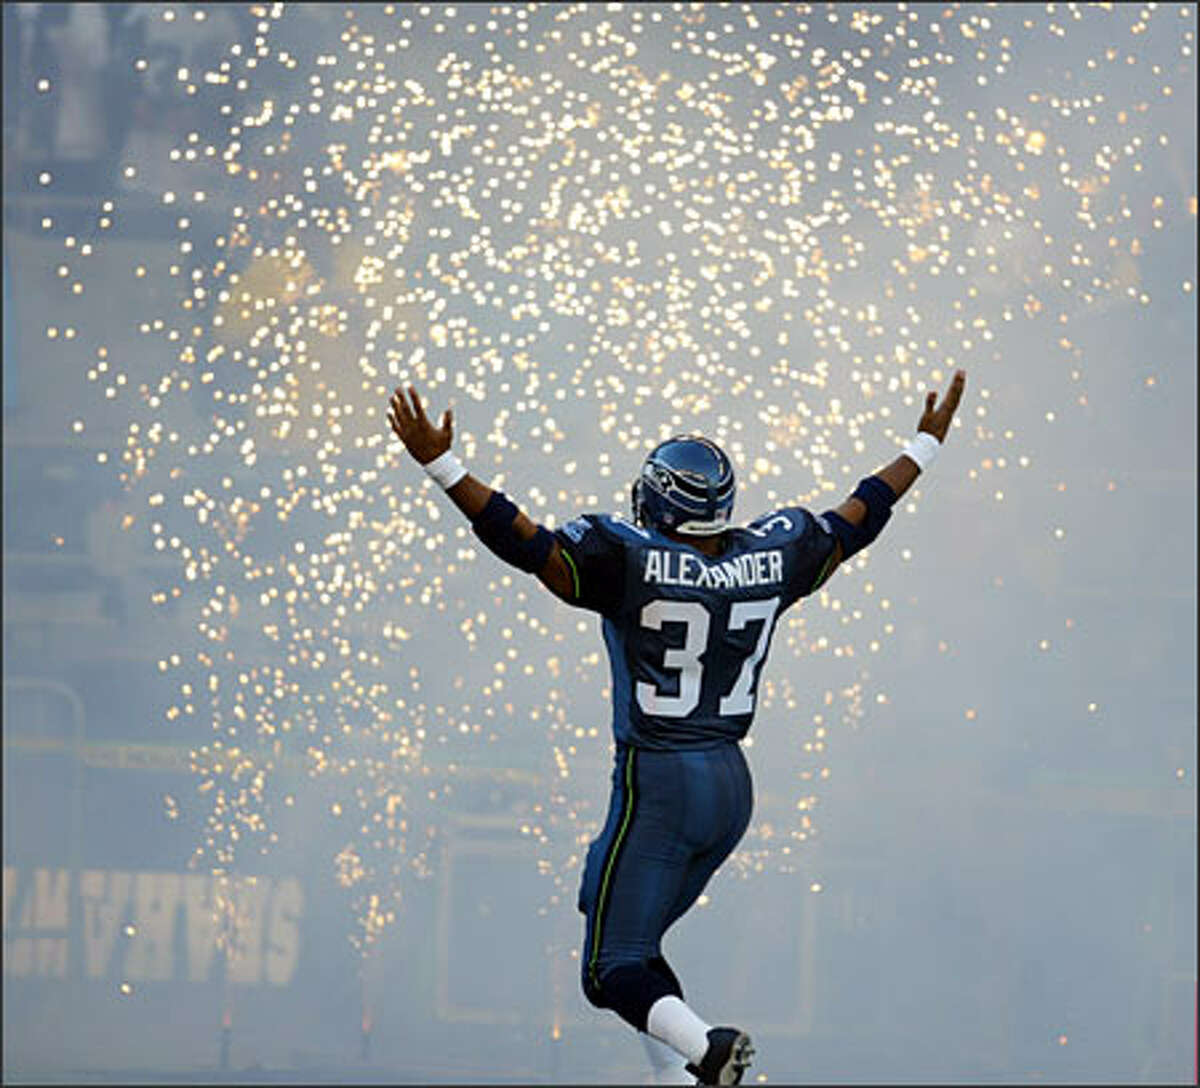 Accompanied by fireworks, Shaun Alexander encourages the crowd at Qwest Field to cheer as he is introduced before the Seahawks' game against the Atlanta Falcons.Haller: The other day I saw a football photo in the P-I that I thought, at first glance, was my picture. Turned out that it was shot by an AP photographer. I realized that I've shot too many photos of tackles, catches, long passes, spectacular runs and sideline features, yet I still picked a football photograph as one of my favorites. This image makes me feel like Alexander had just thrown the sparkles into the air like it's special Seahawks